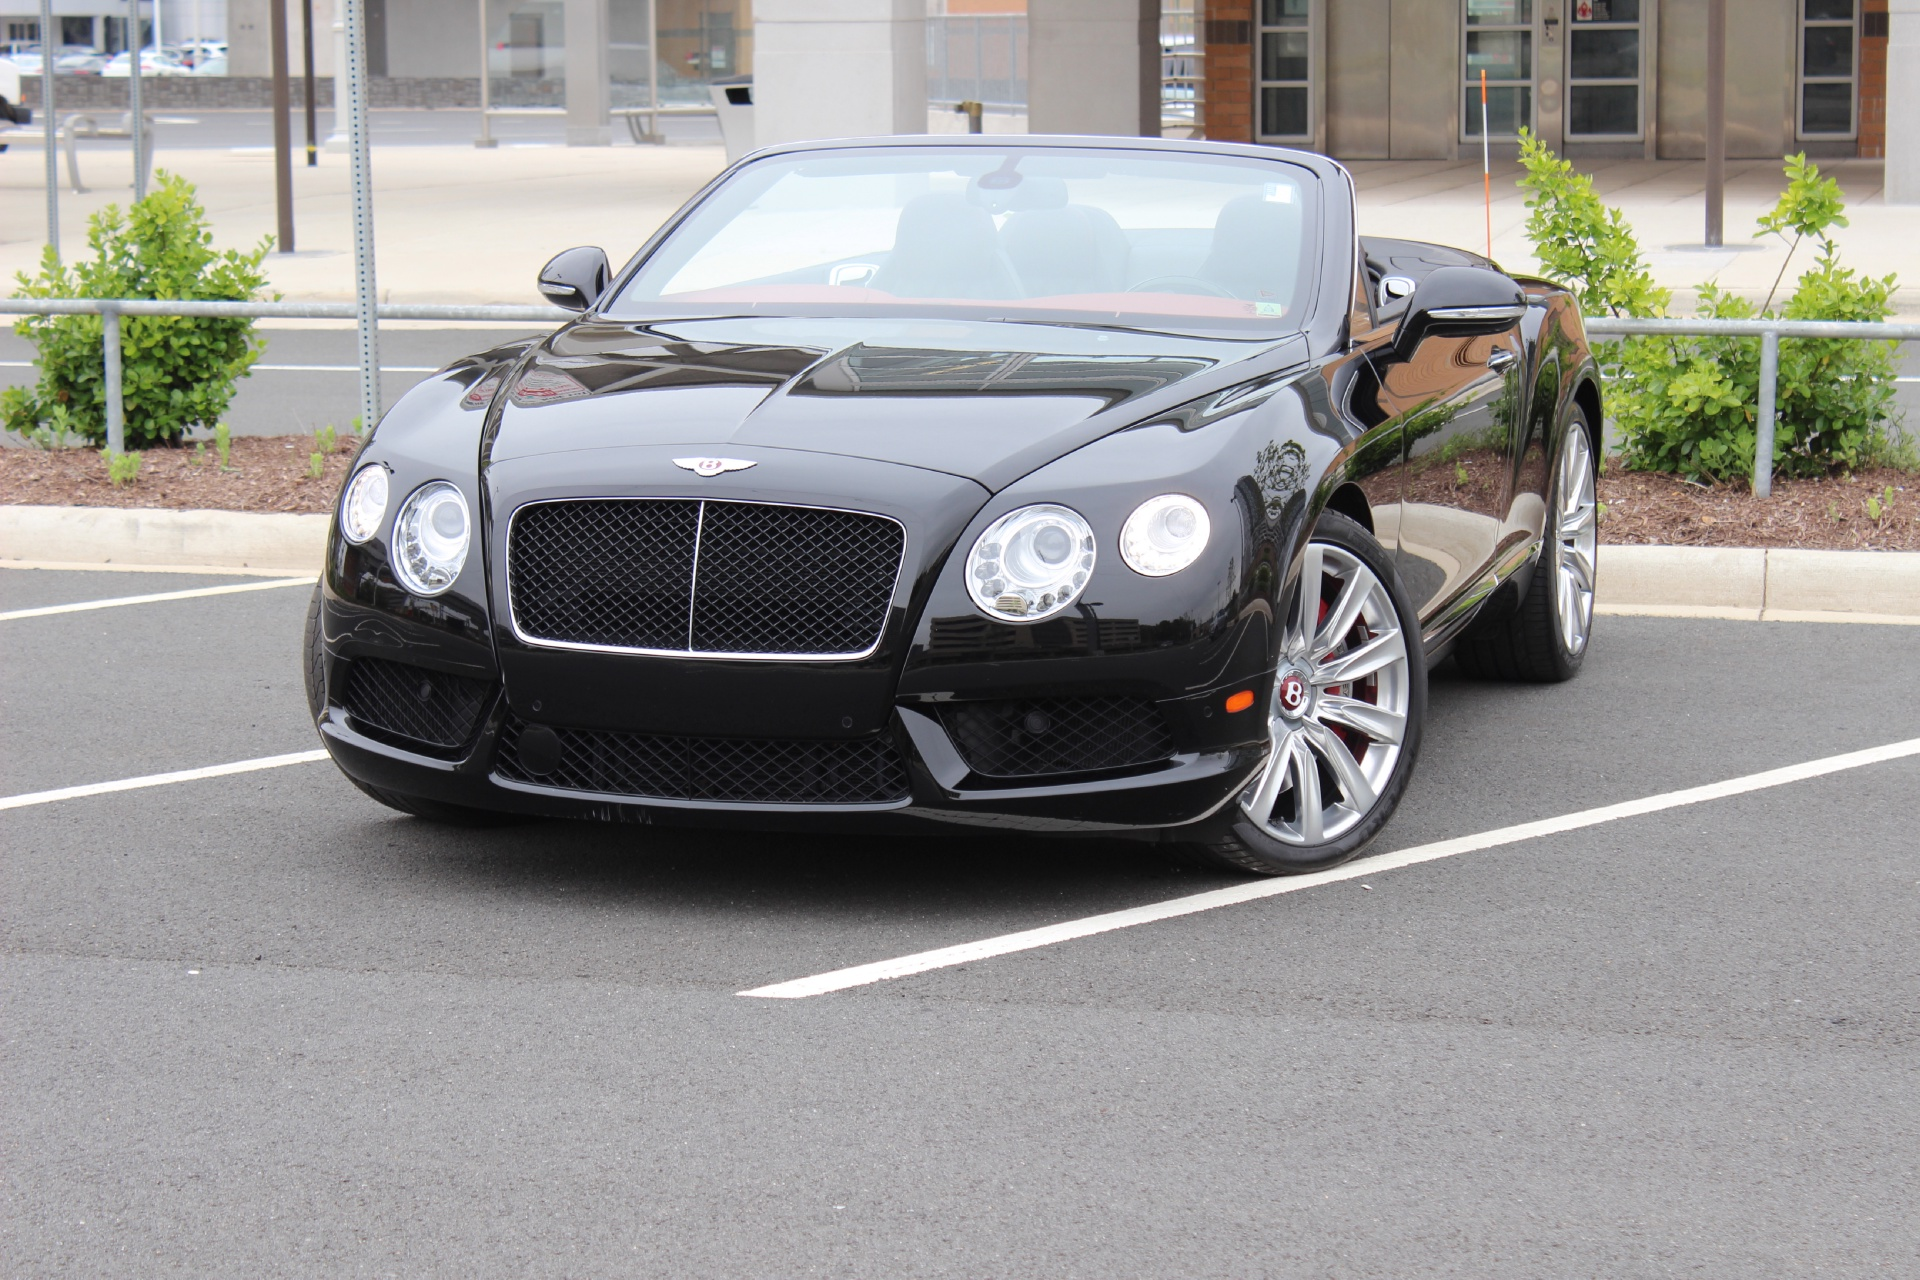 2013 bentley continental gt v8 stock p082853 for sale near used 2013 bentley continental gt v8 vienna va vanachro Choice Image